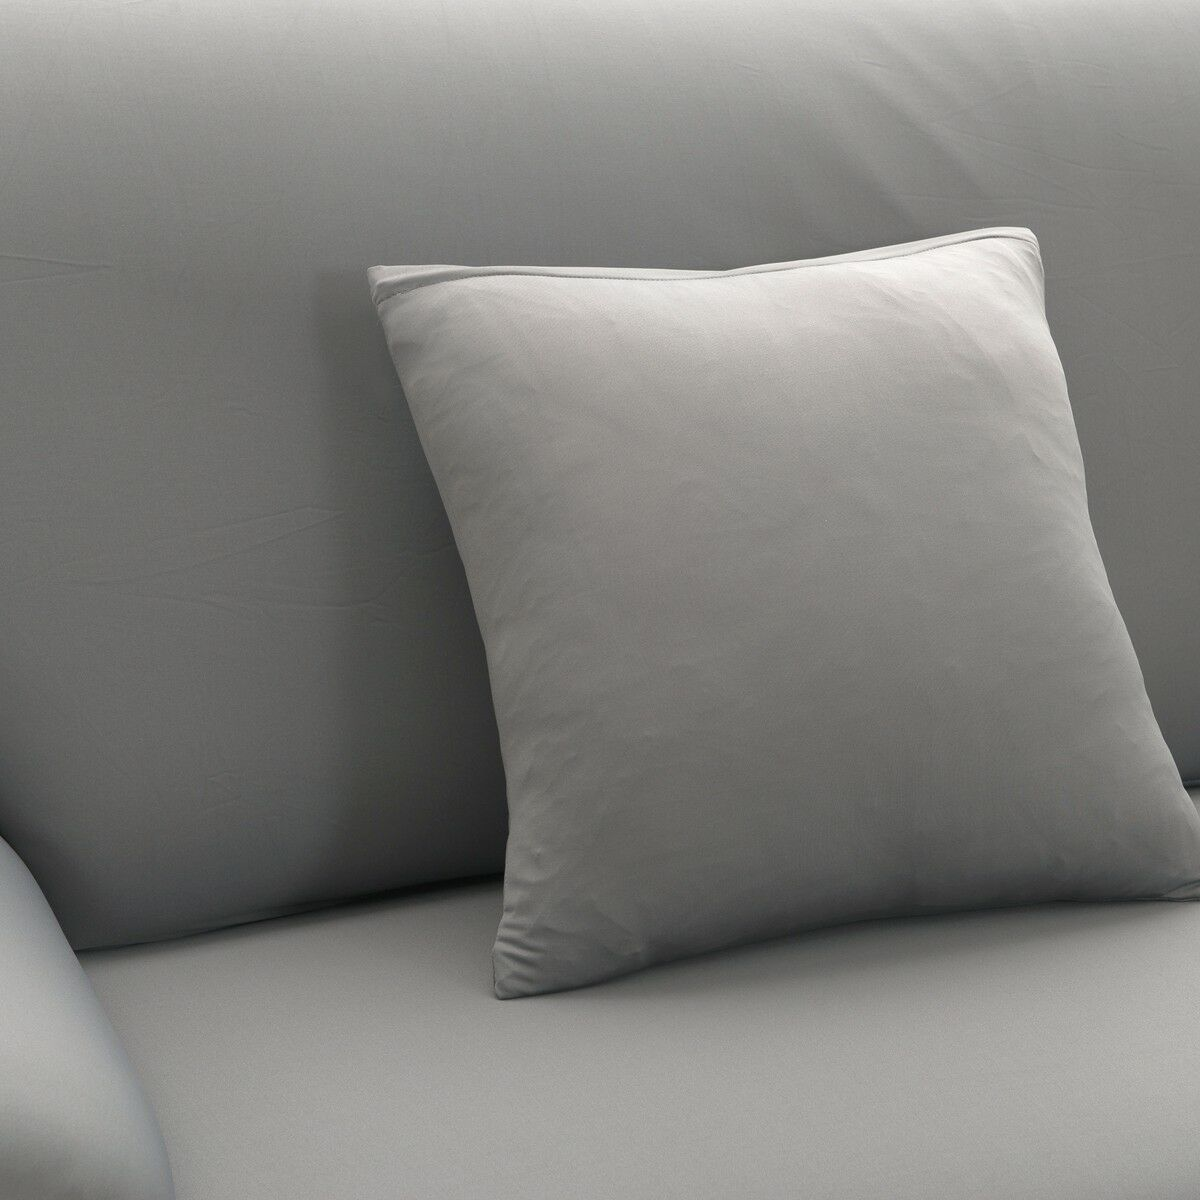 EASY-Stretch-Couch-Sofa-Lounge-Covers-Recliner-1-2-3-Seater-Dining-Chair-Cover thumbnail 77